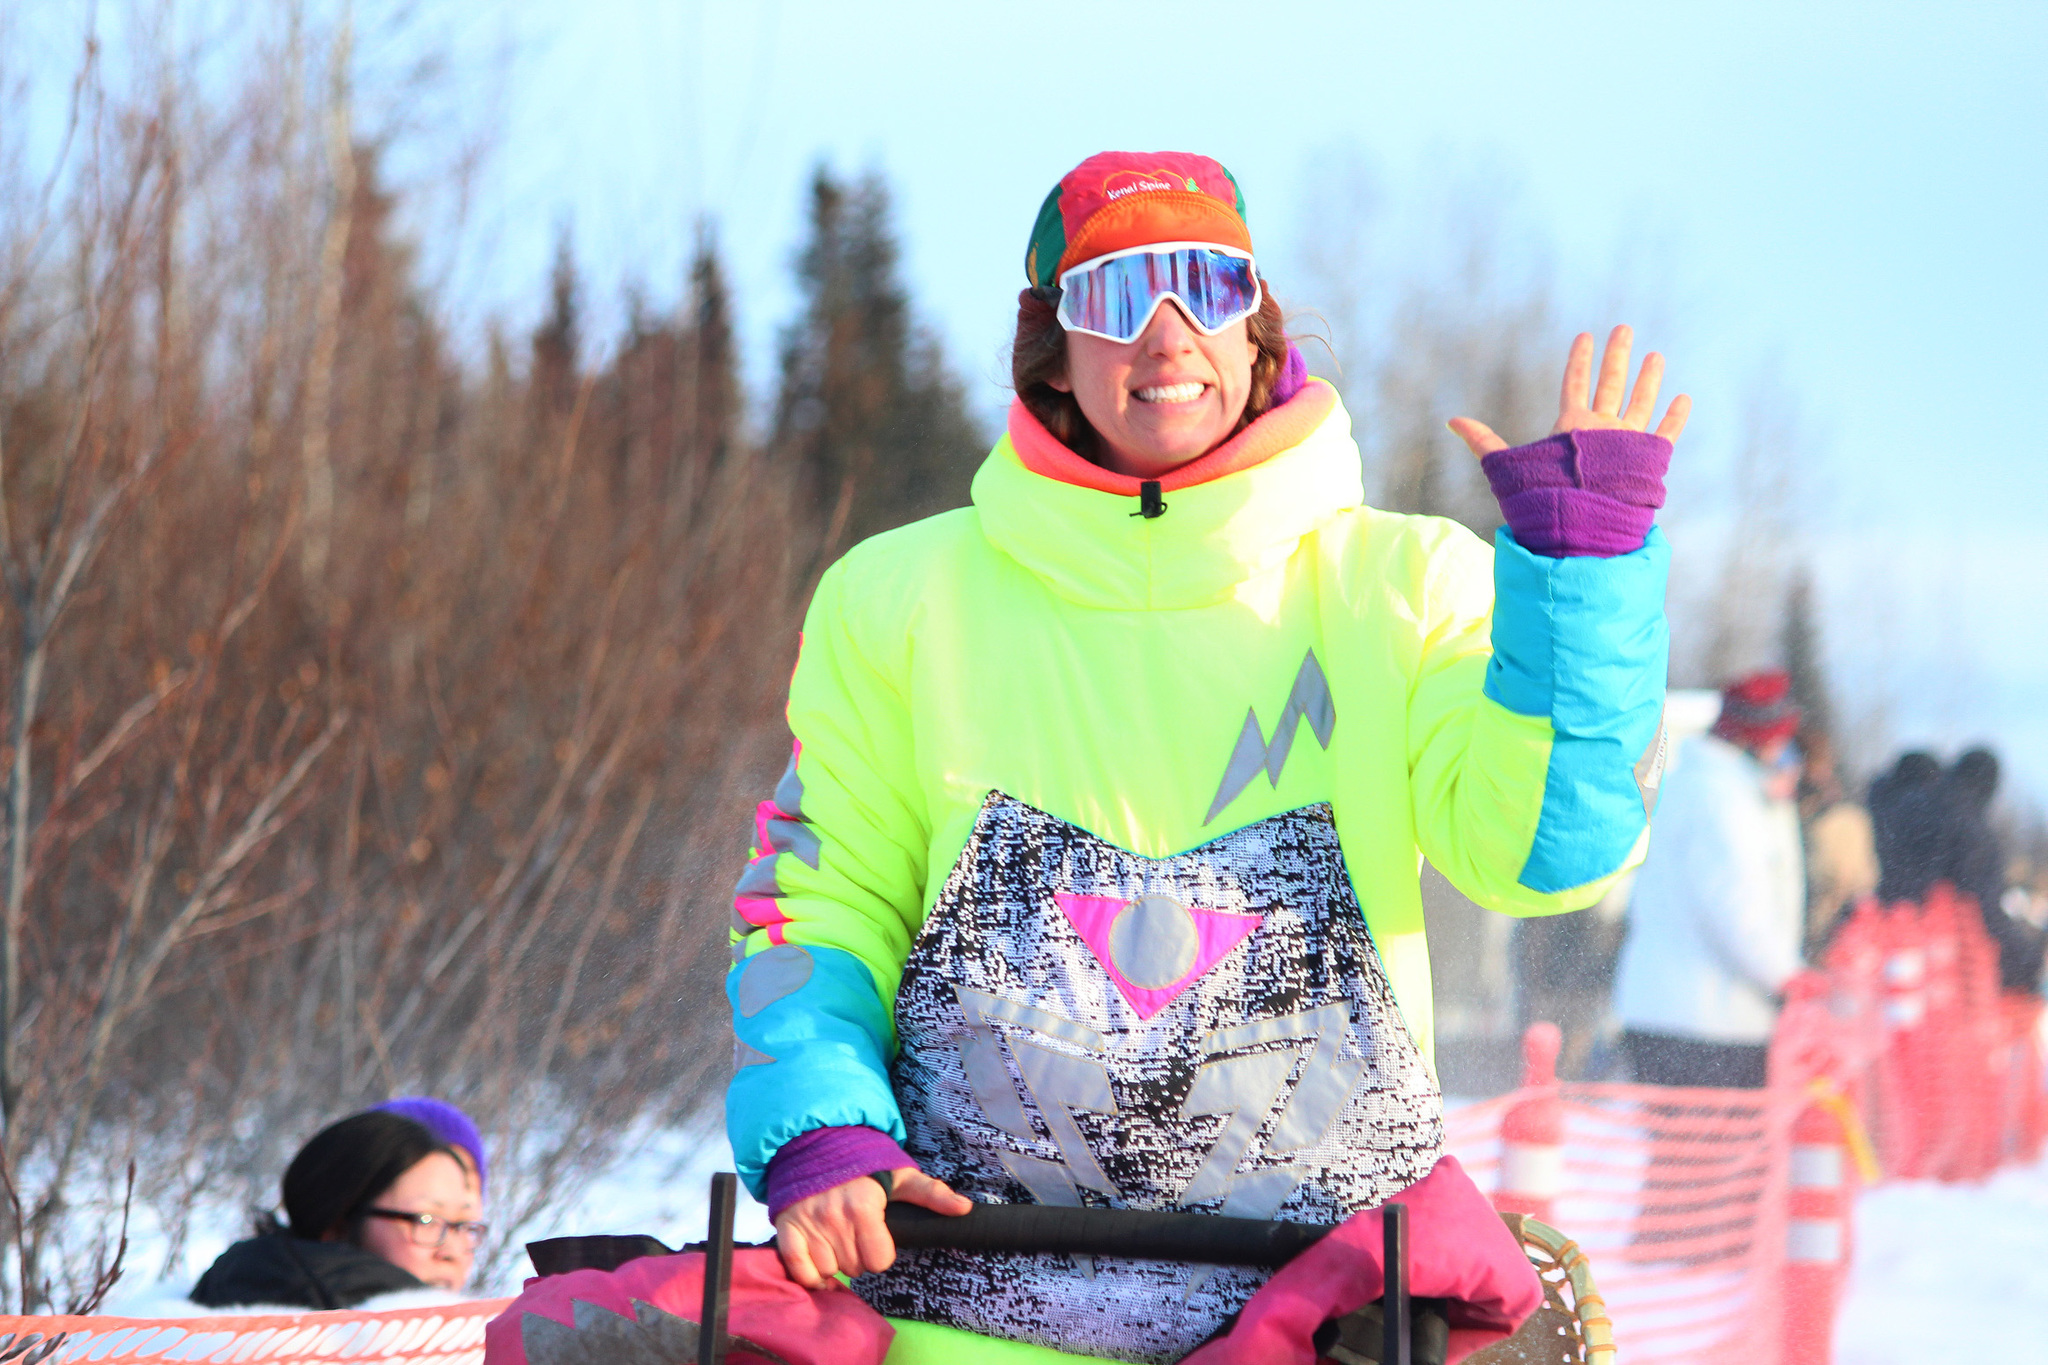 Musher Monica Zappa waves to onlookers as she and her team of dogs take off from the starting line of this year's Tustumena 200 Sled Dog Race on Saturday, Jan. 28, 2017 in Kasilof, Alaska. Zappa and 22 other mushers will travel with their dogs through the Caribou Hills to Homer and back in the 200-mile race. (Megan Pacer/Peninsula Clarion)